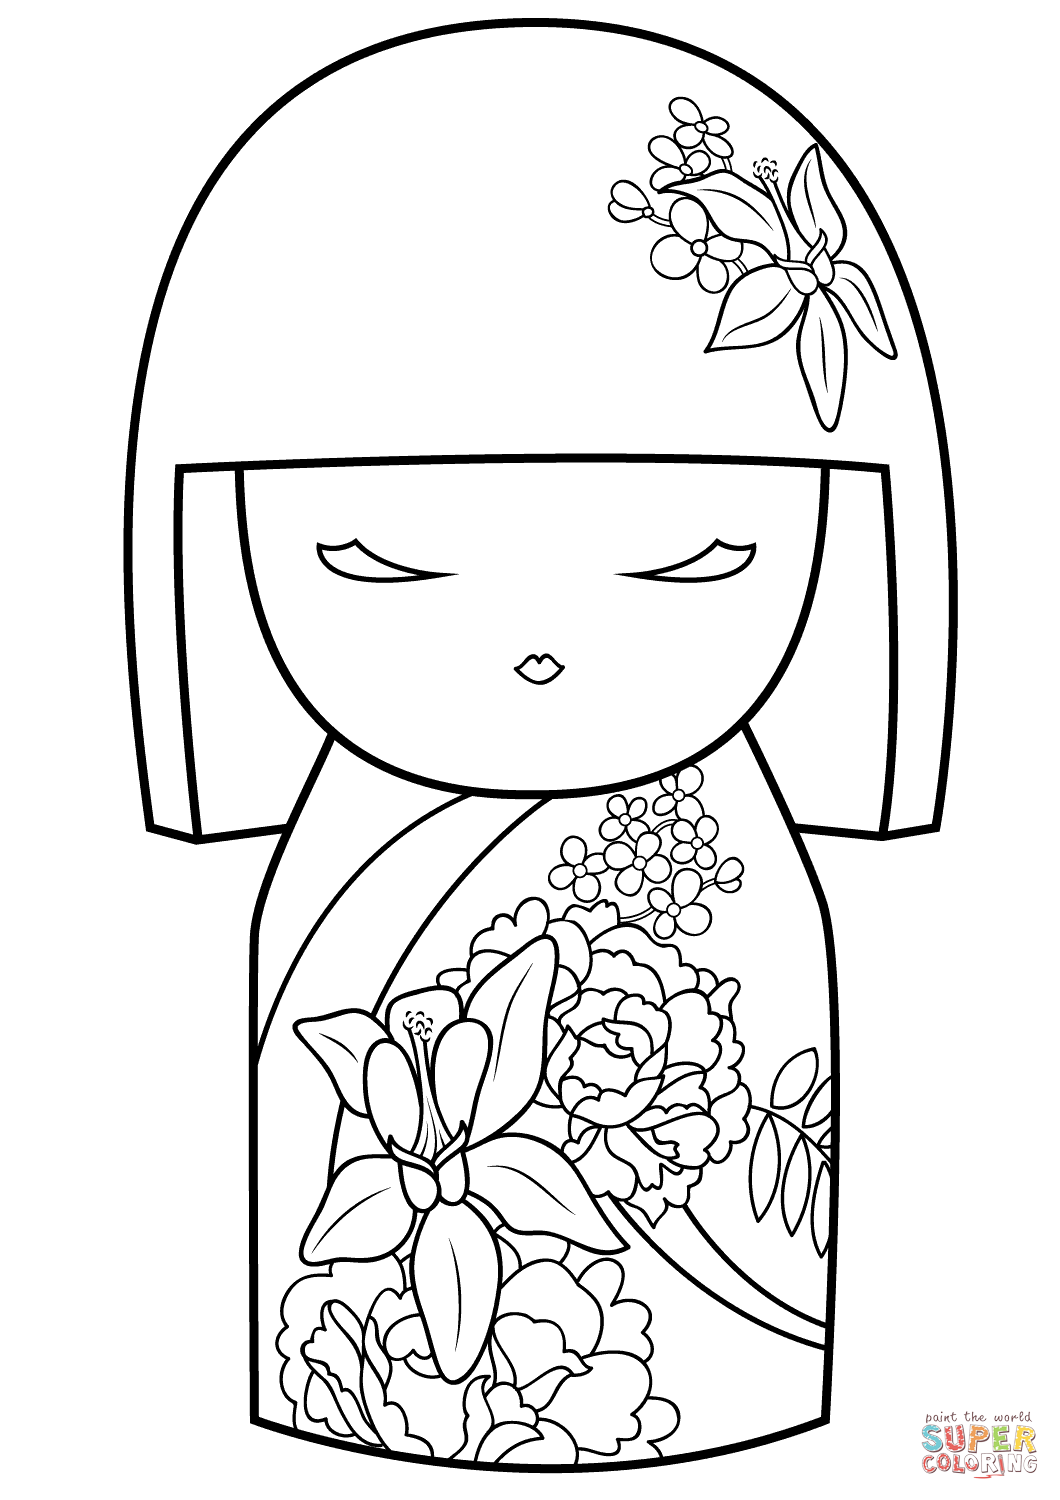 Coloriage Kokeshi.Kokeshi Dolls Coloring Pages At Getdrawings Com Free For